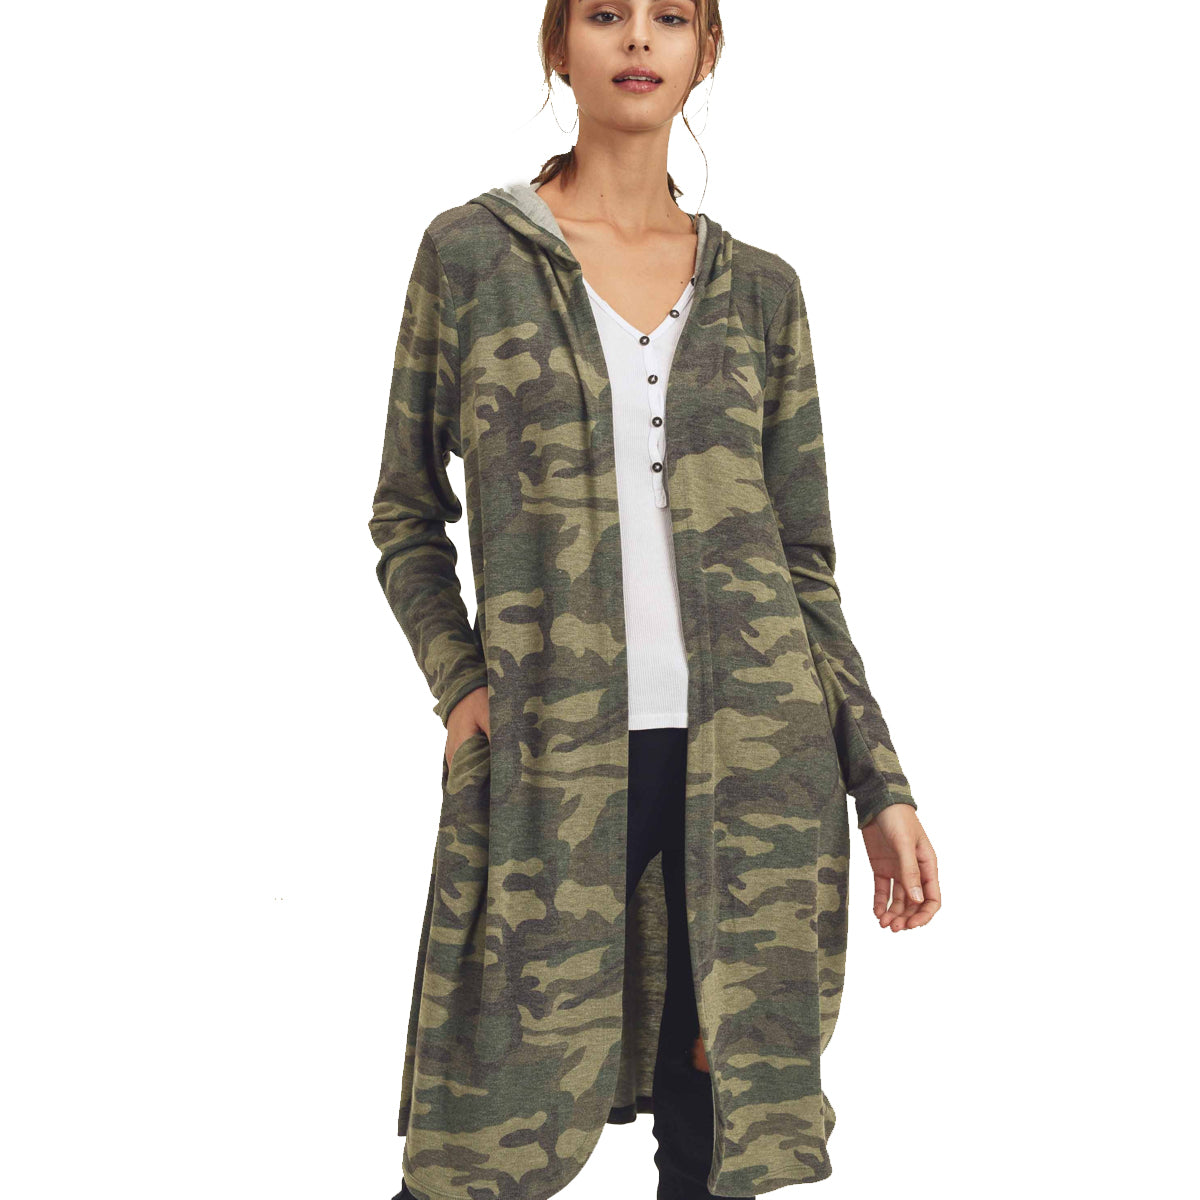 First Love Camo Knit Hooded Cardigan - Army Green